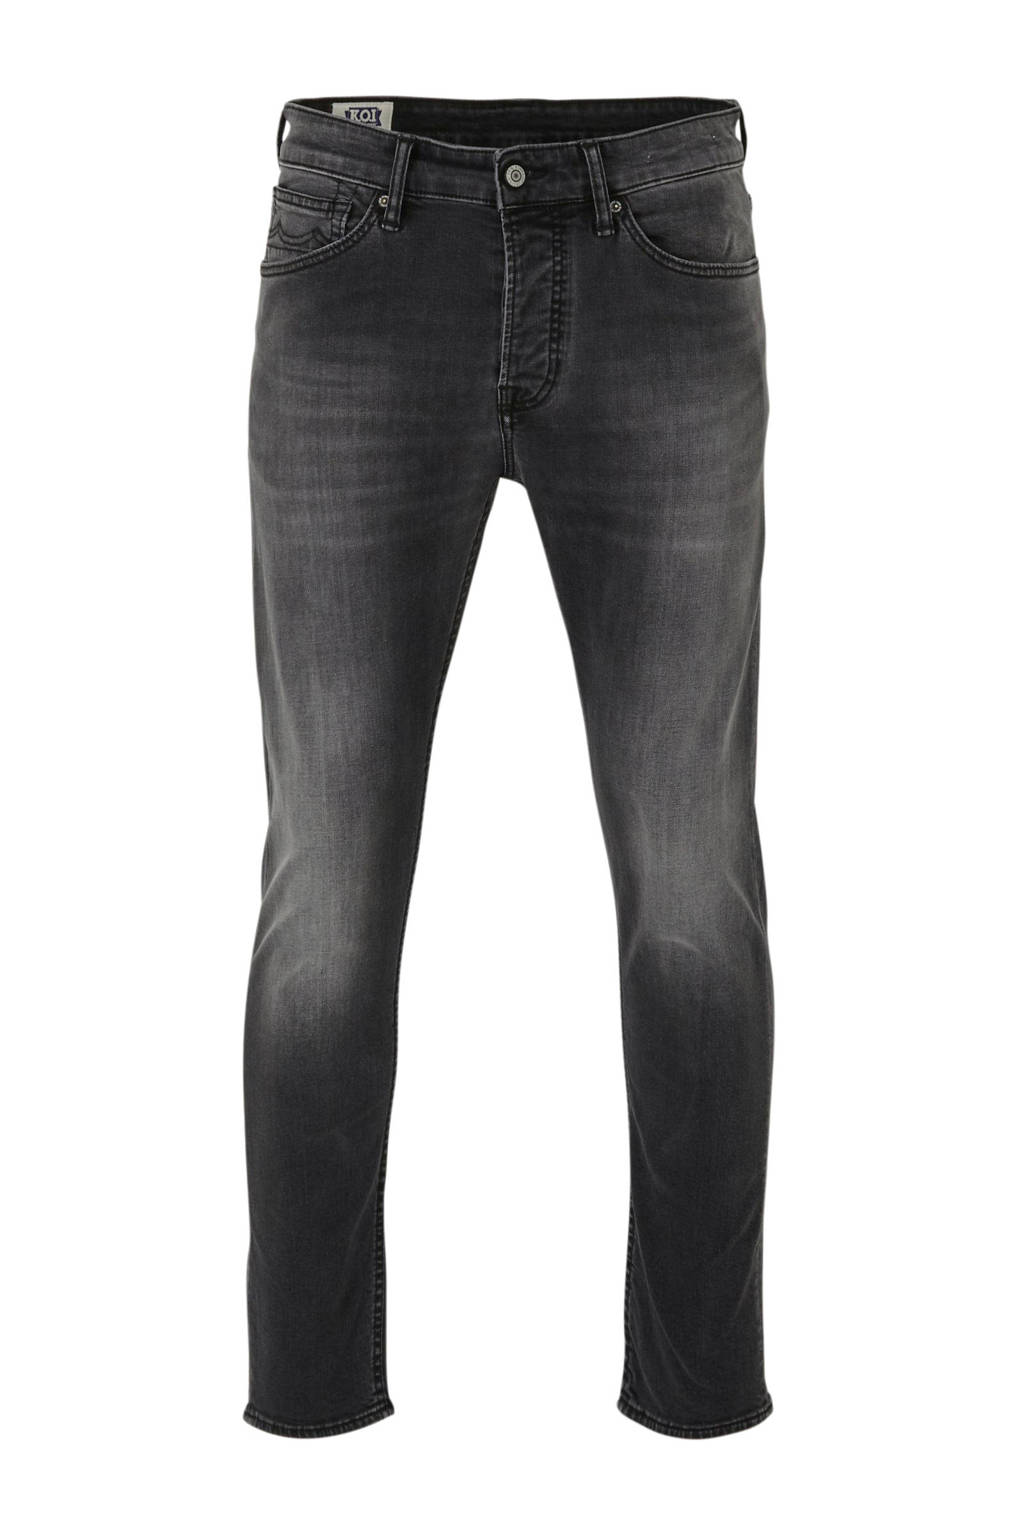 Kings of Indigo slim fit jeans John grey worn in, Grey Worn In